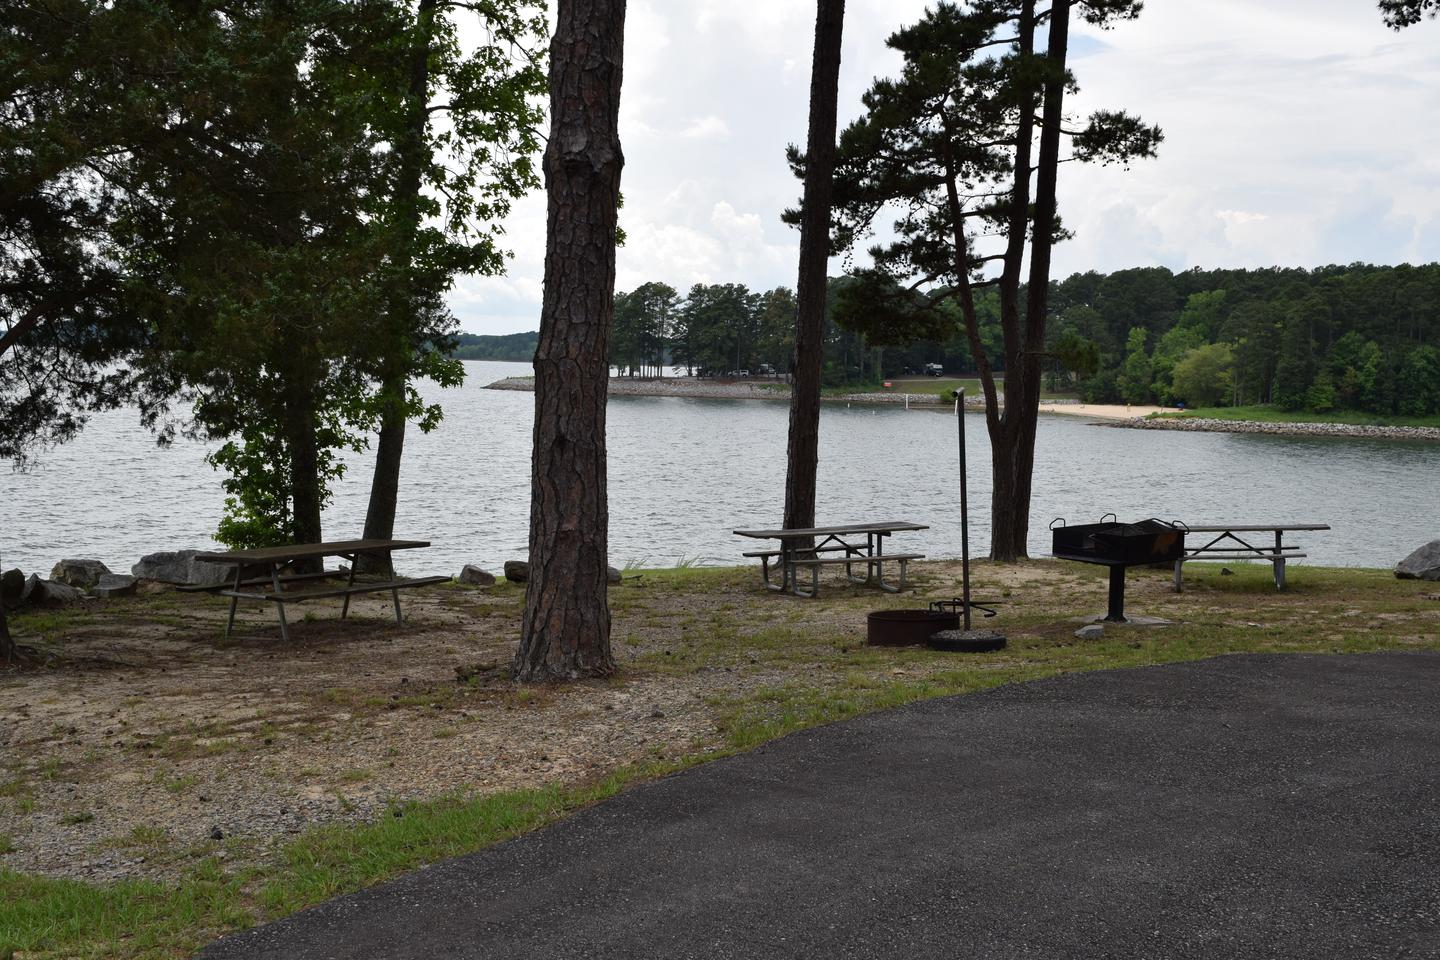 Mays Chapel Group Camping Area Turn AroundWelcome to Mays Chapel Group Camping Area! This is a view of the lake from the camping area! This is located near the turn around at the end of the camping area. There are grills and fire rings that you can use.